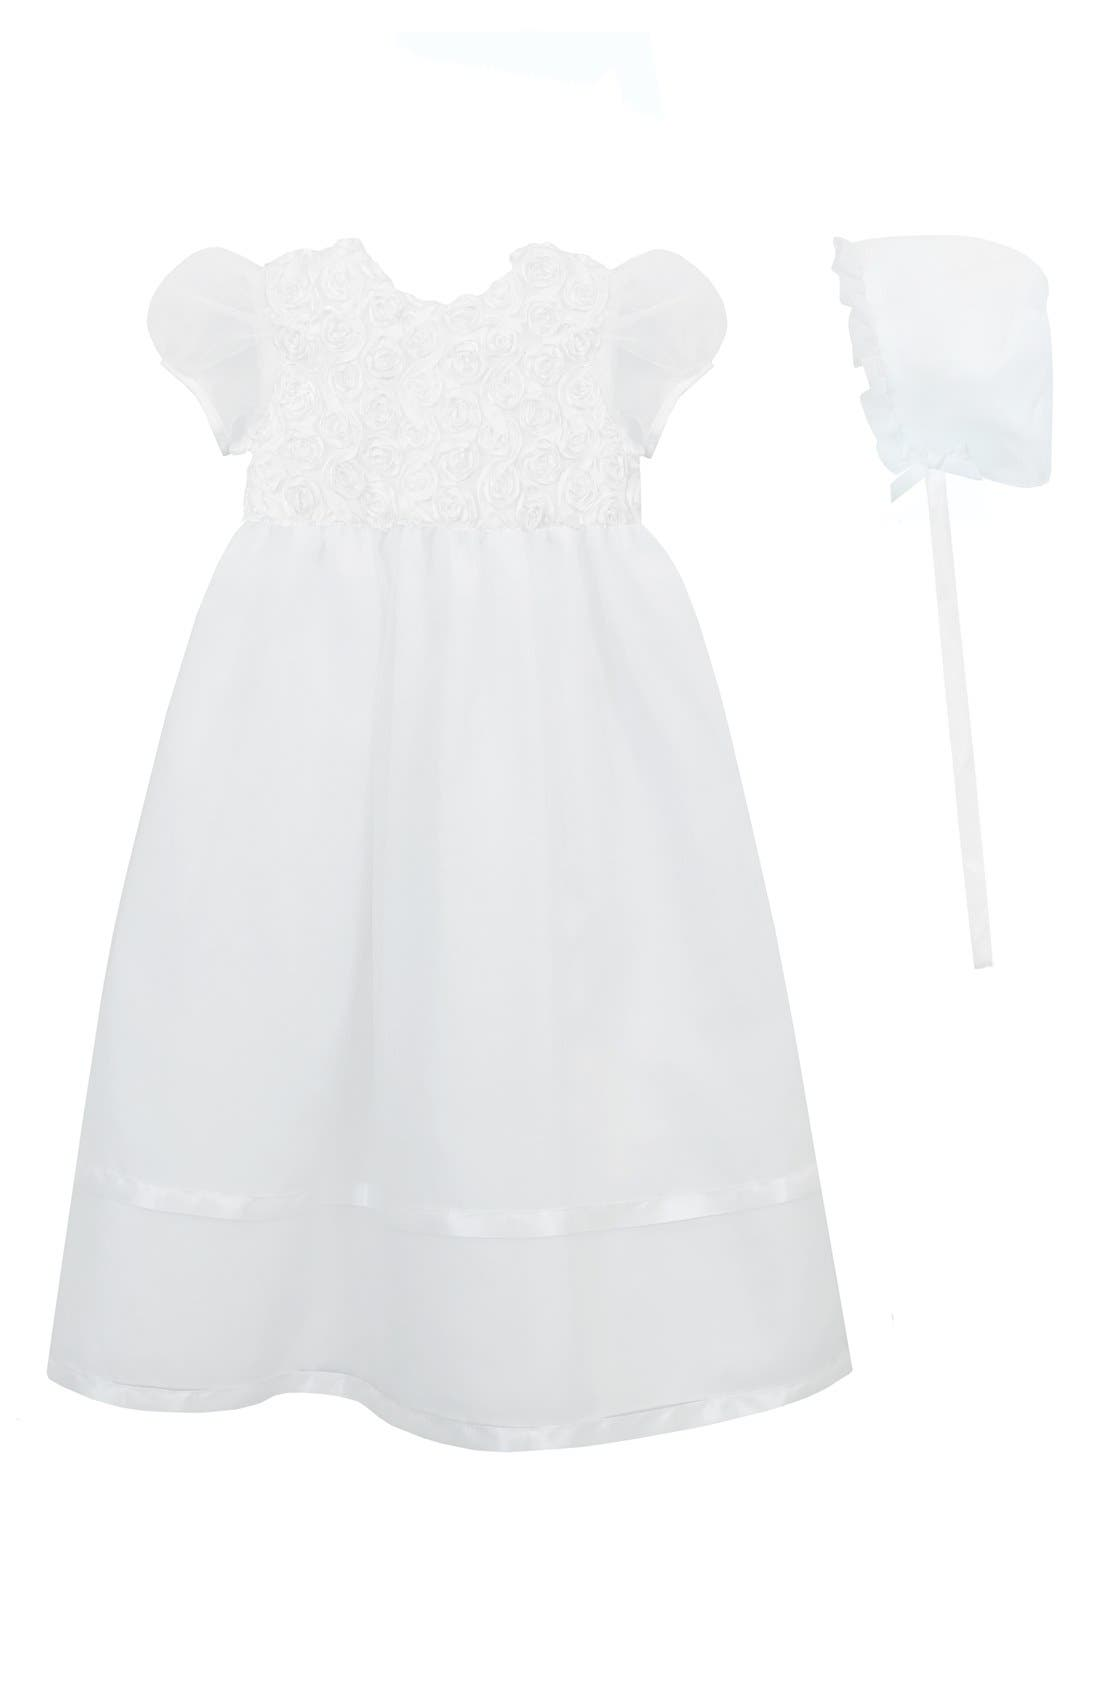 C.I. CASTRO & CO. Christening Gown & Bonnet, Main, color, 100